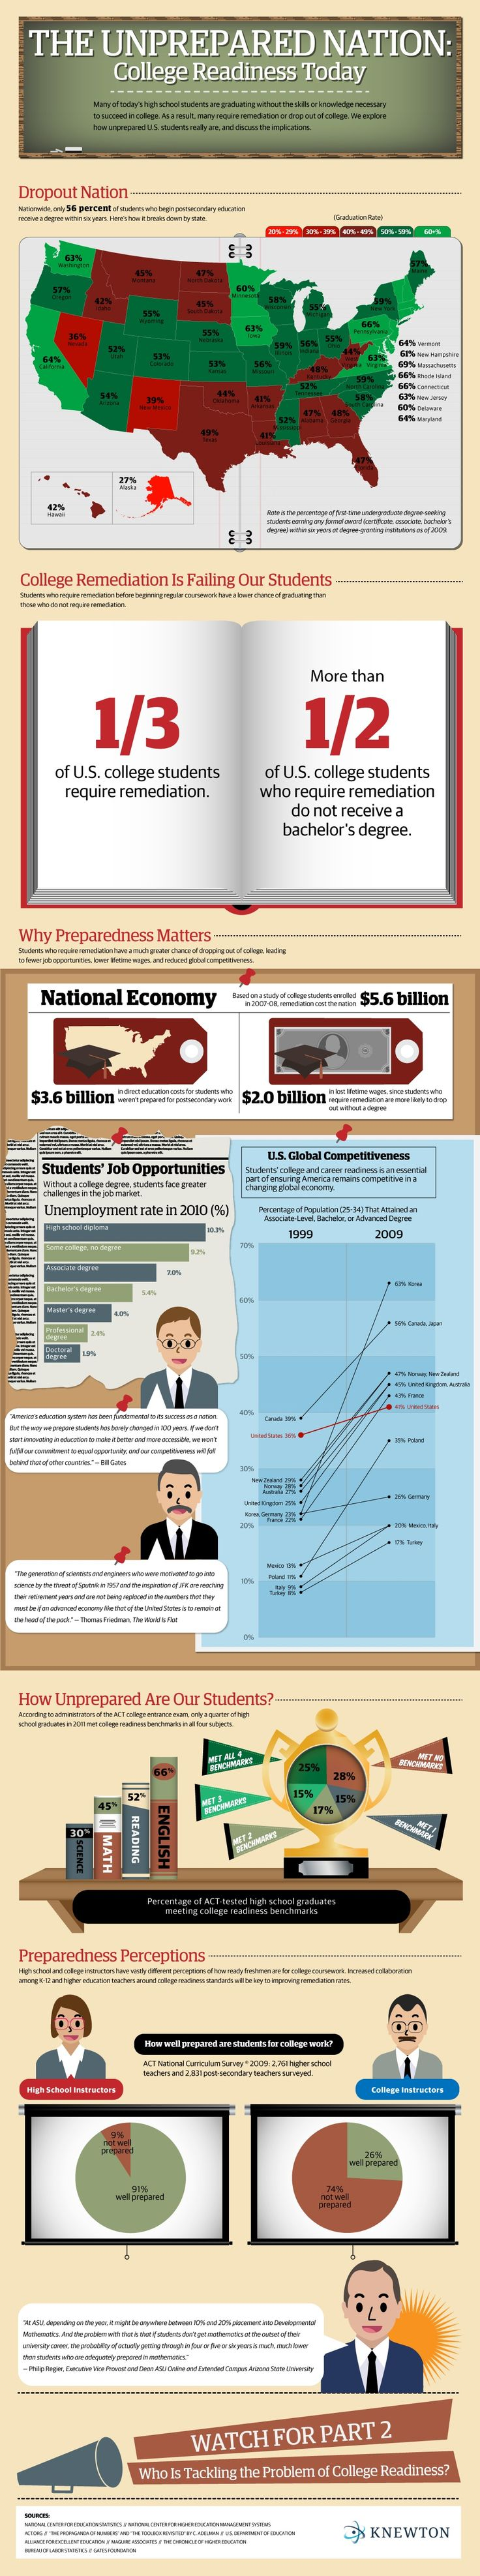 The Unprepared Nation: College Readiness Today Infographic - http://elearninginfographics.com/unprepared-nation-college-readiness-today-infographic/